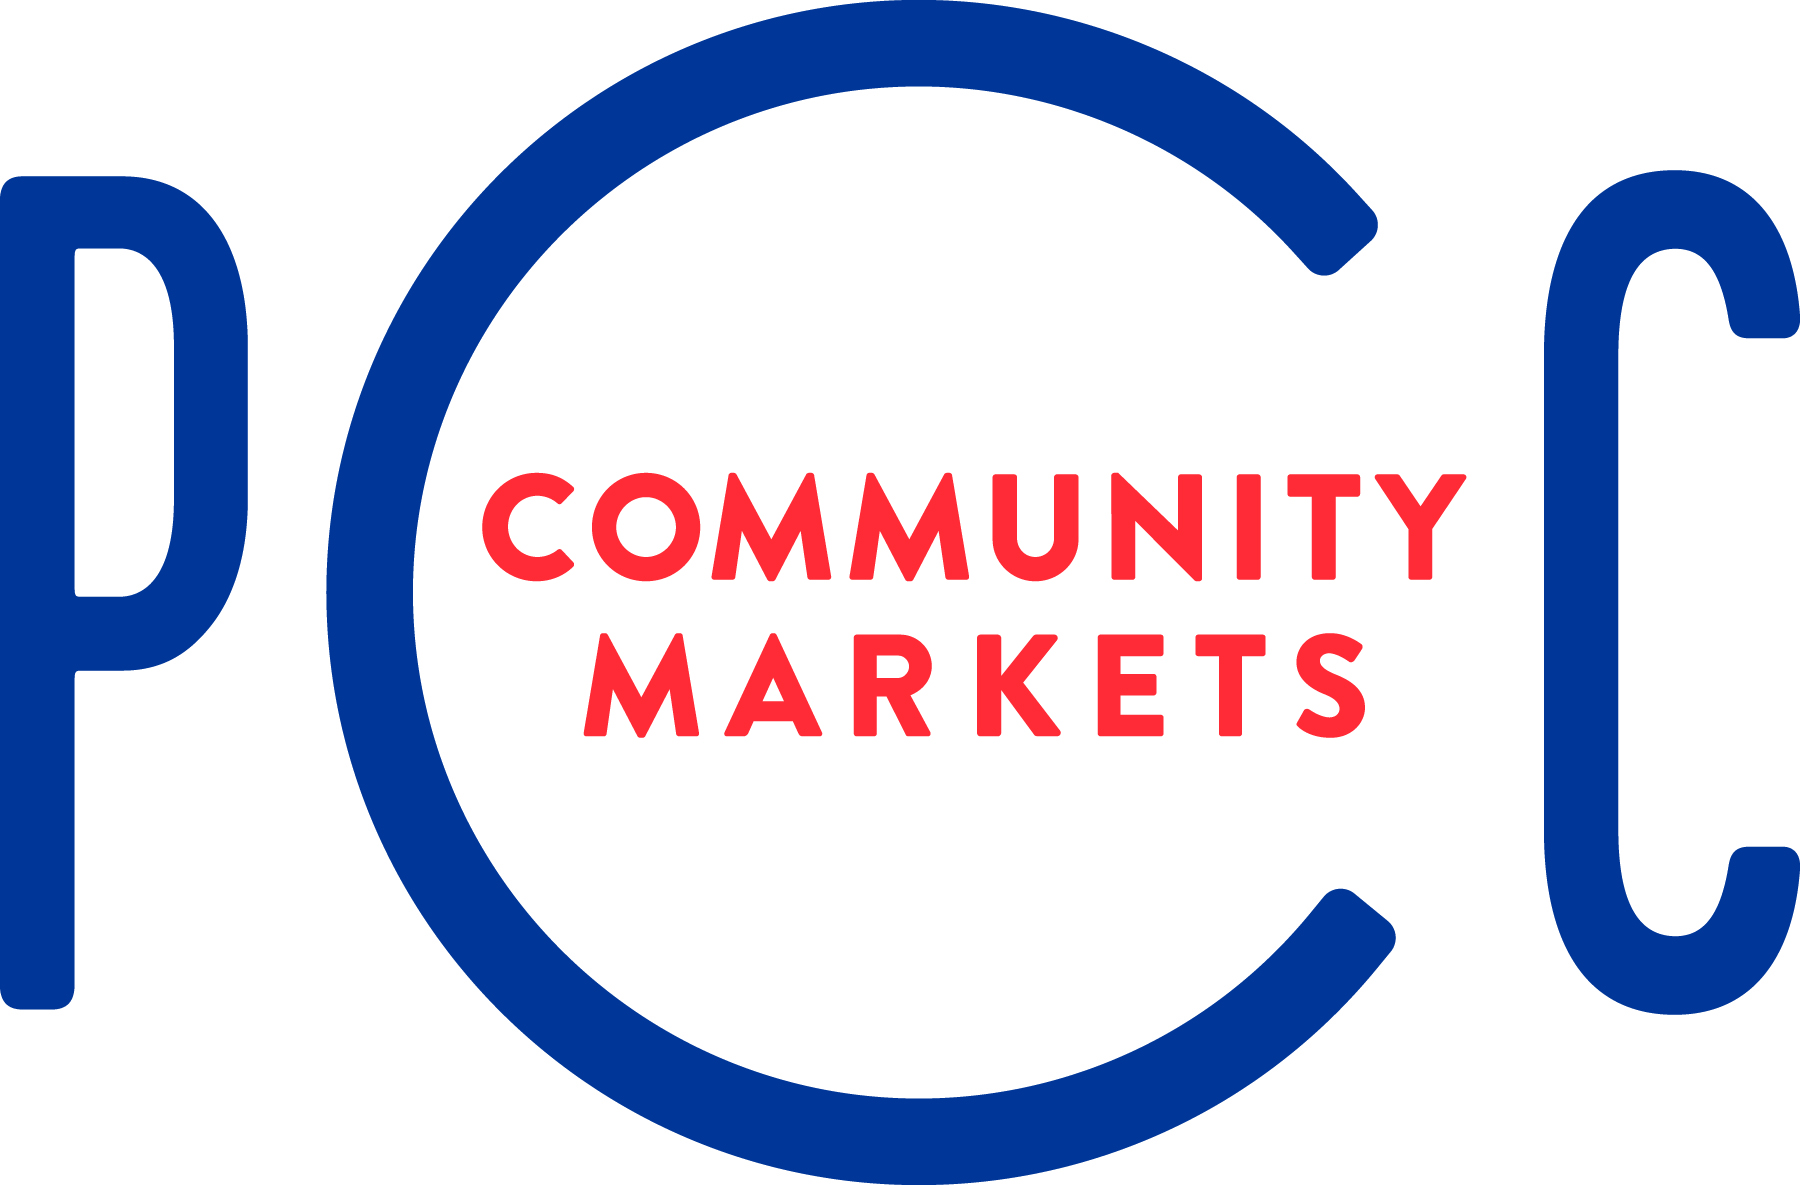 PCC_Community_Markets_logo_(1).jpg